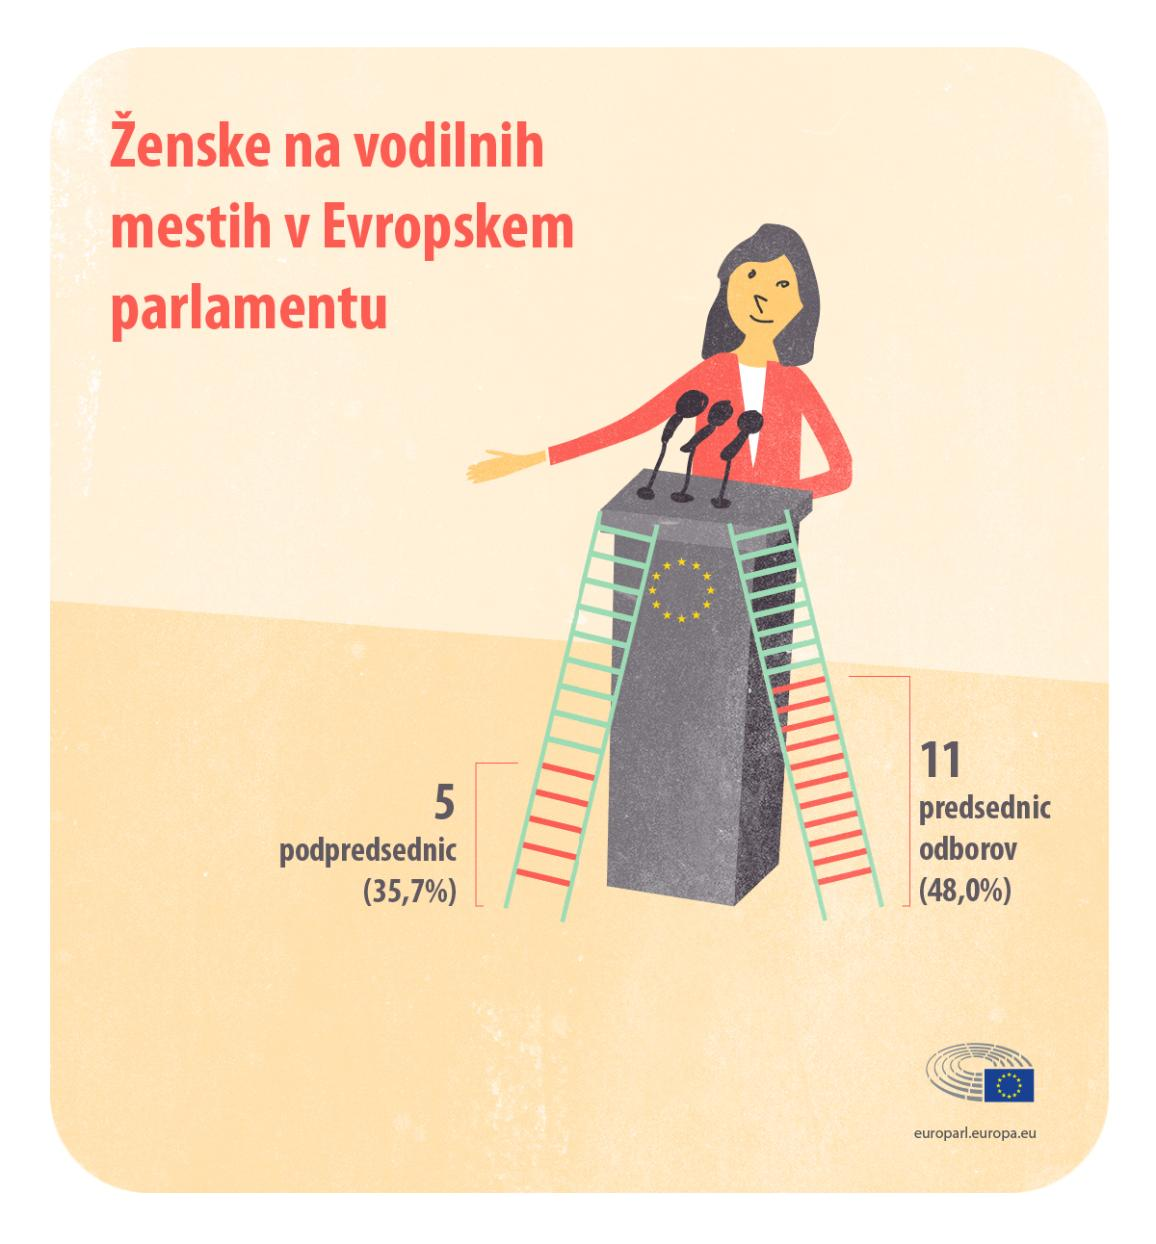 Infographic on women in a top position at the European Parliament